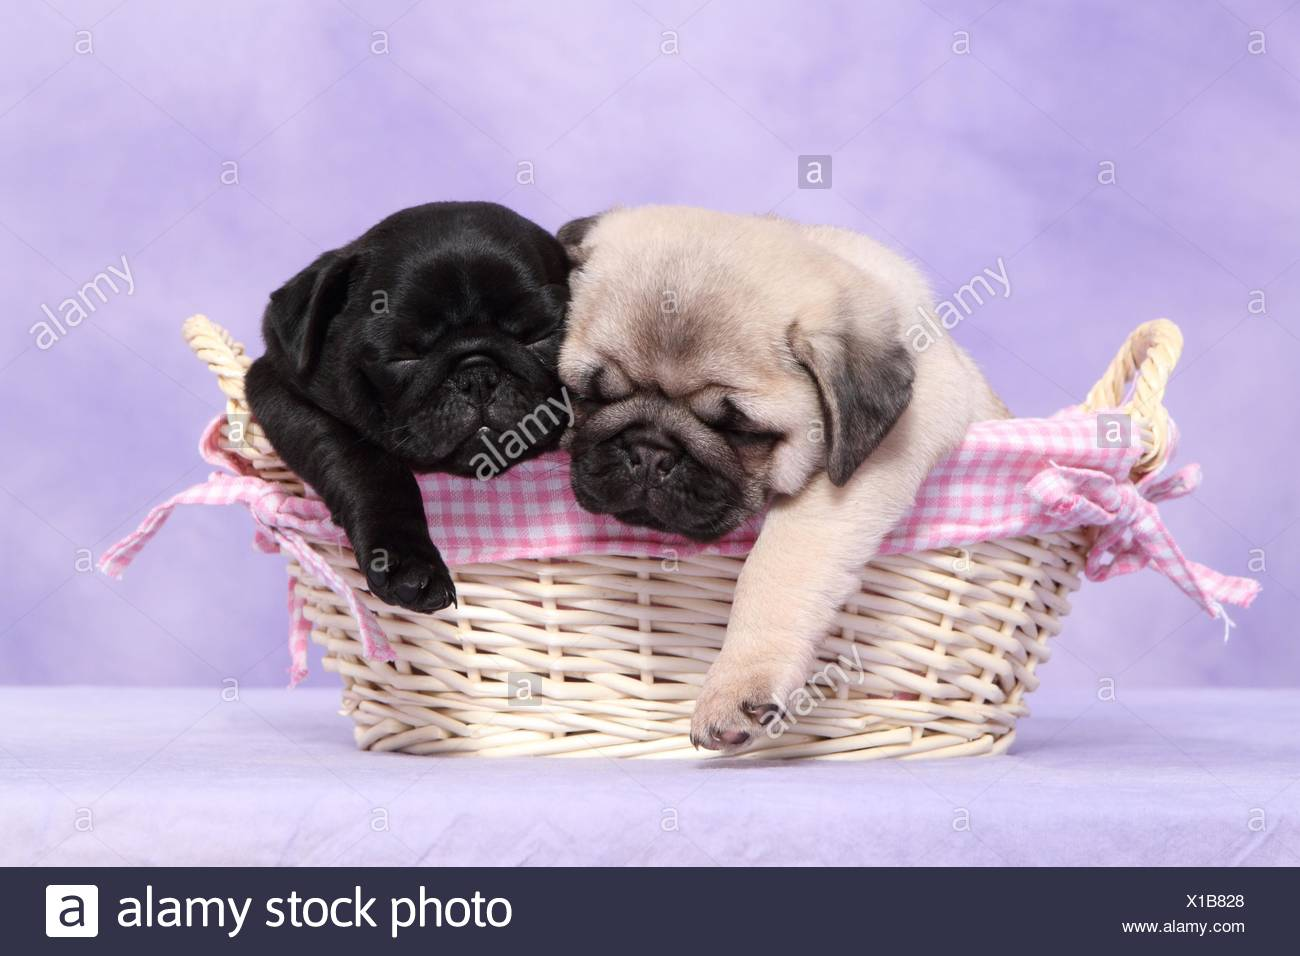 pug puppies - Stock Image